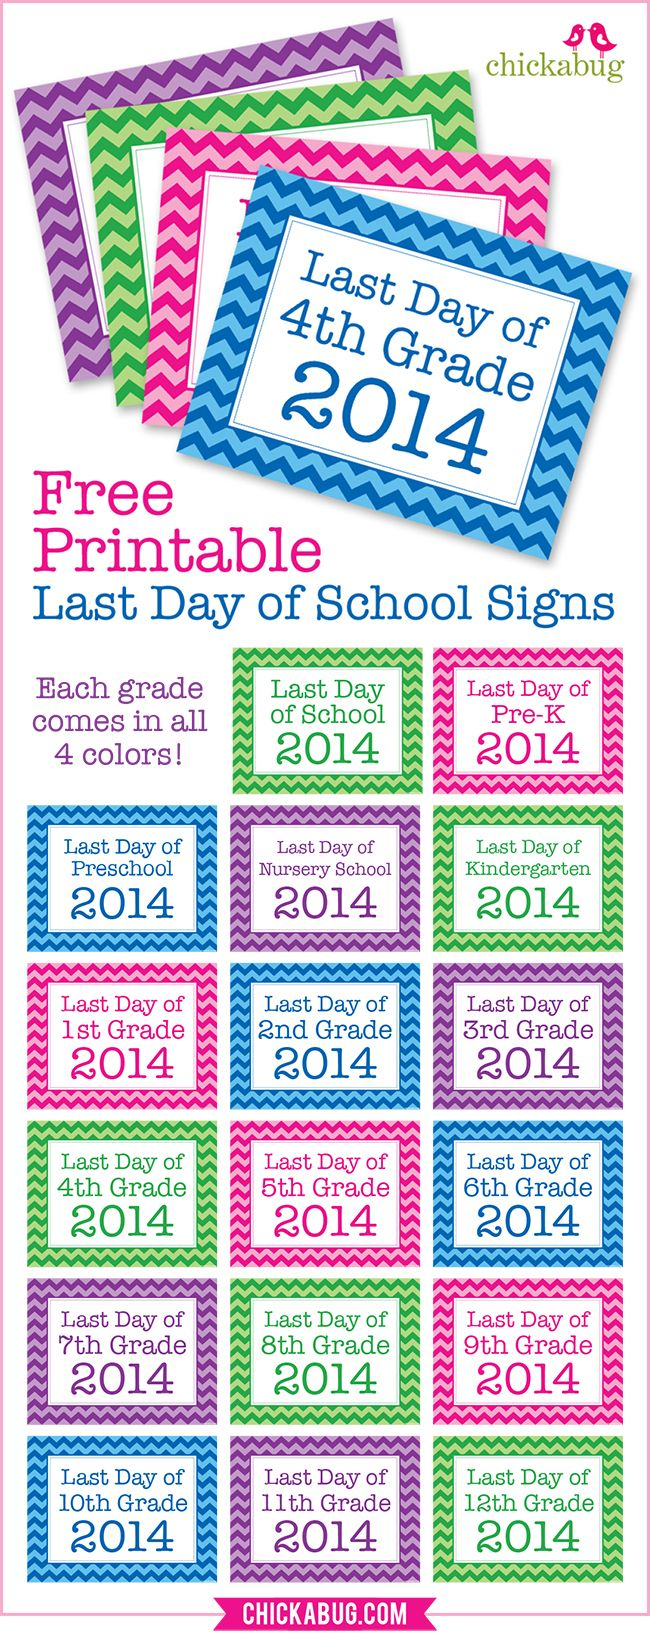 Free printable last day of school signs - EVERY grade in FOUR colors!